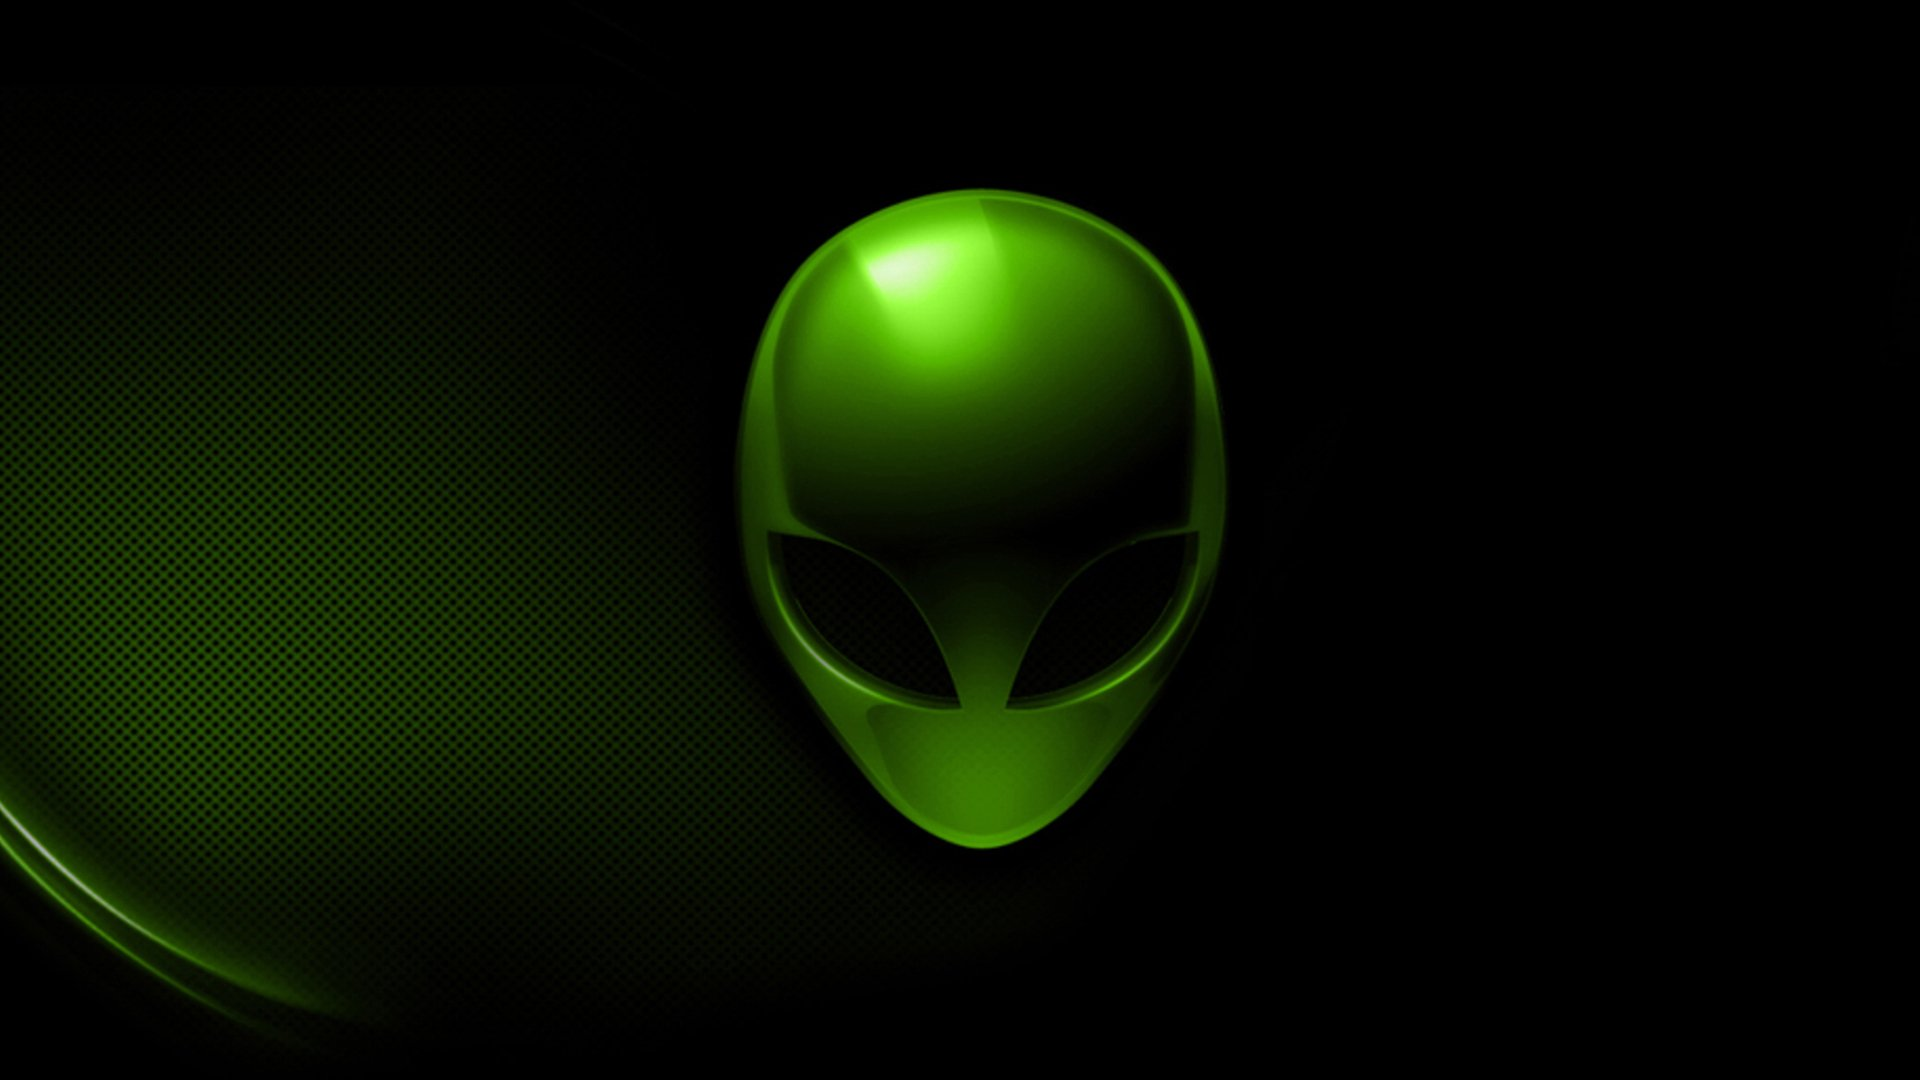 alienware dark green logo hd 1920x1080 1080p wallpaper compatible for 1920x1080